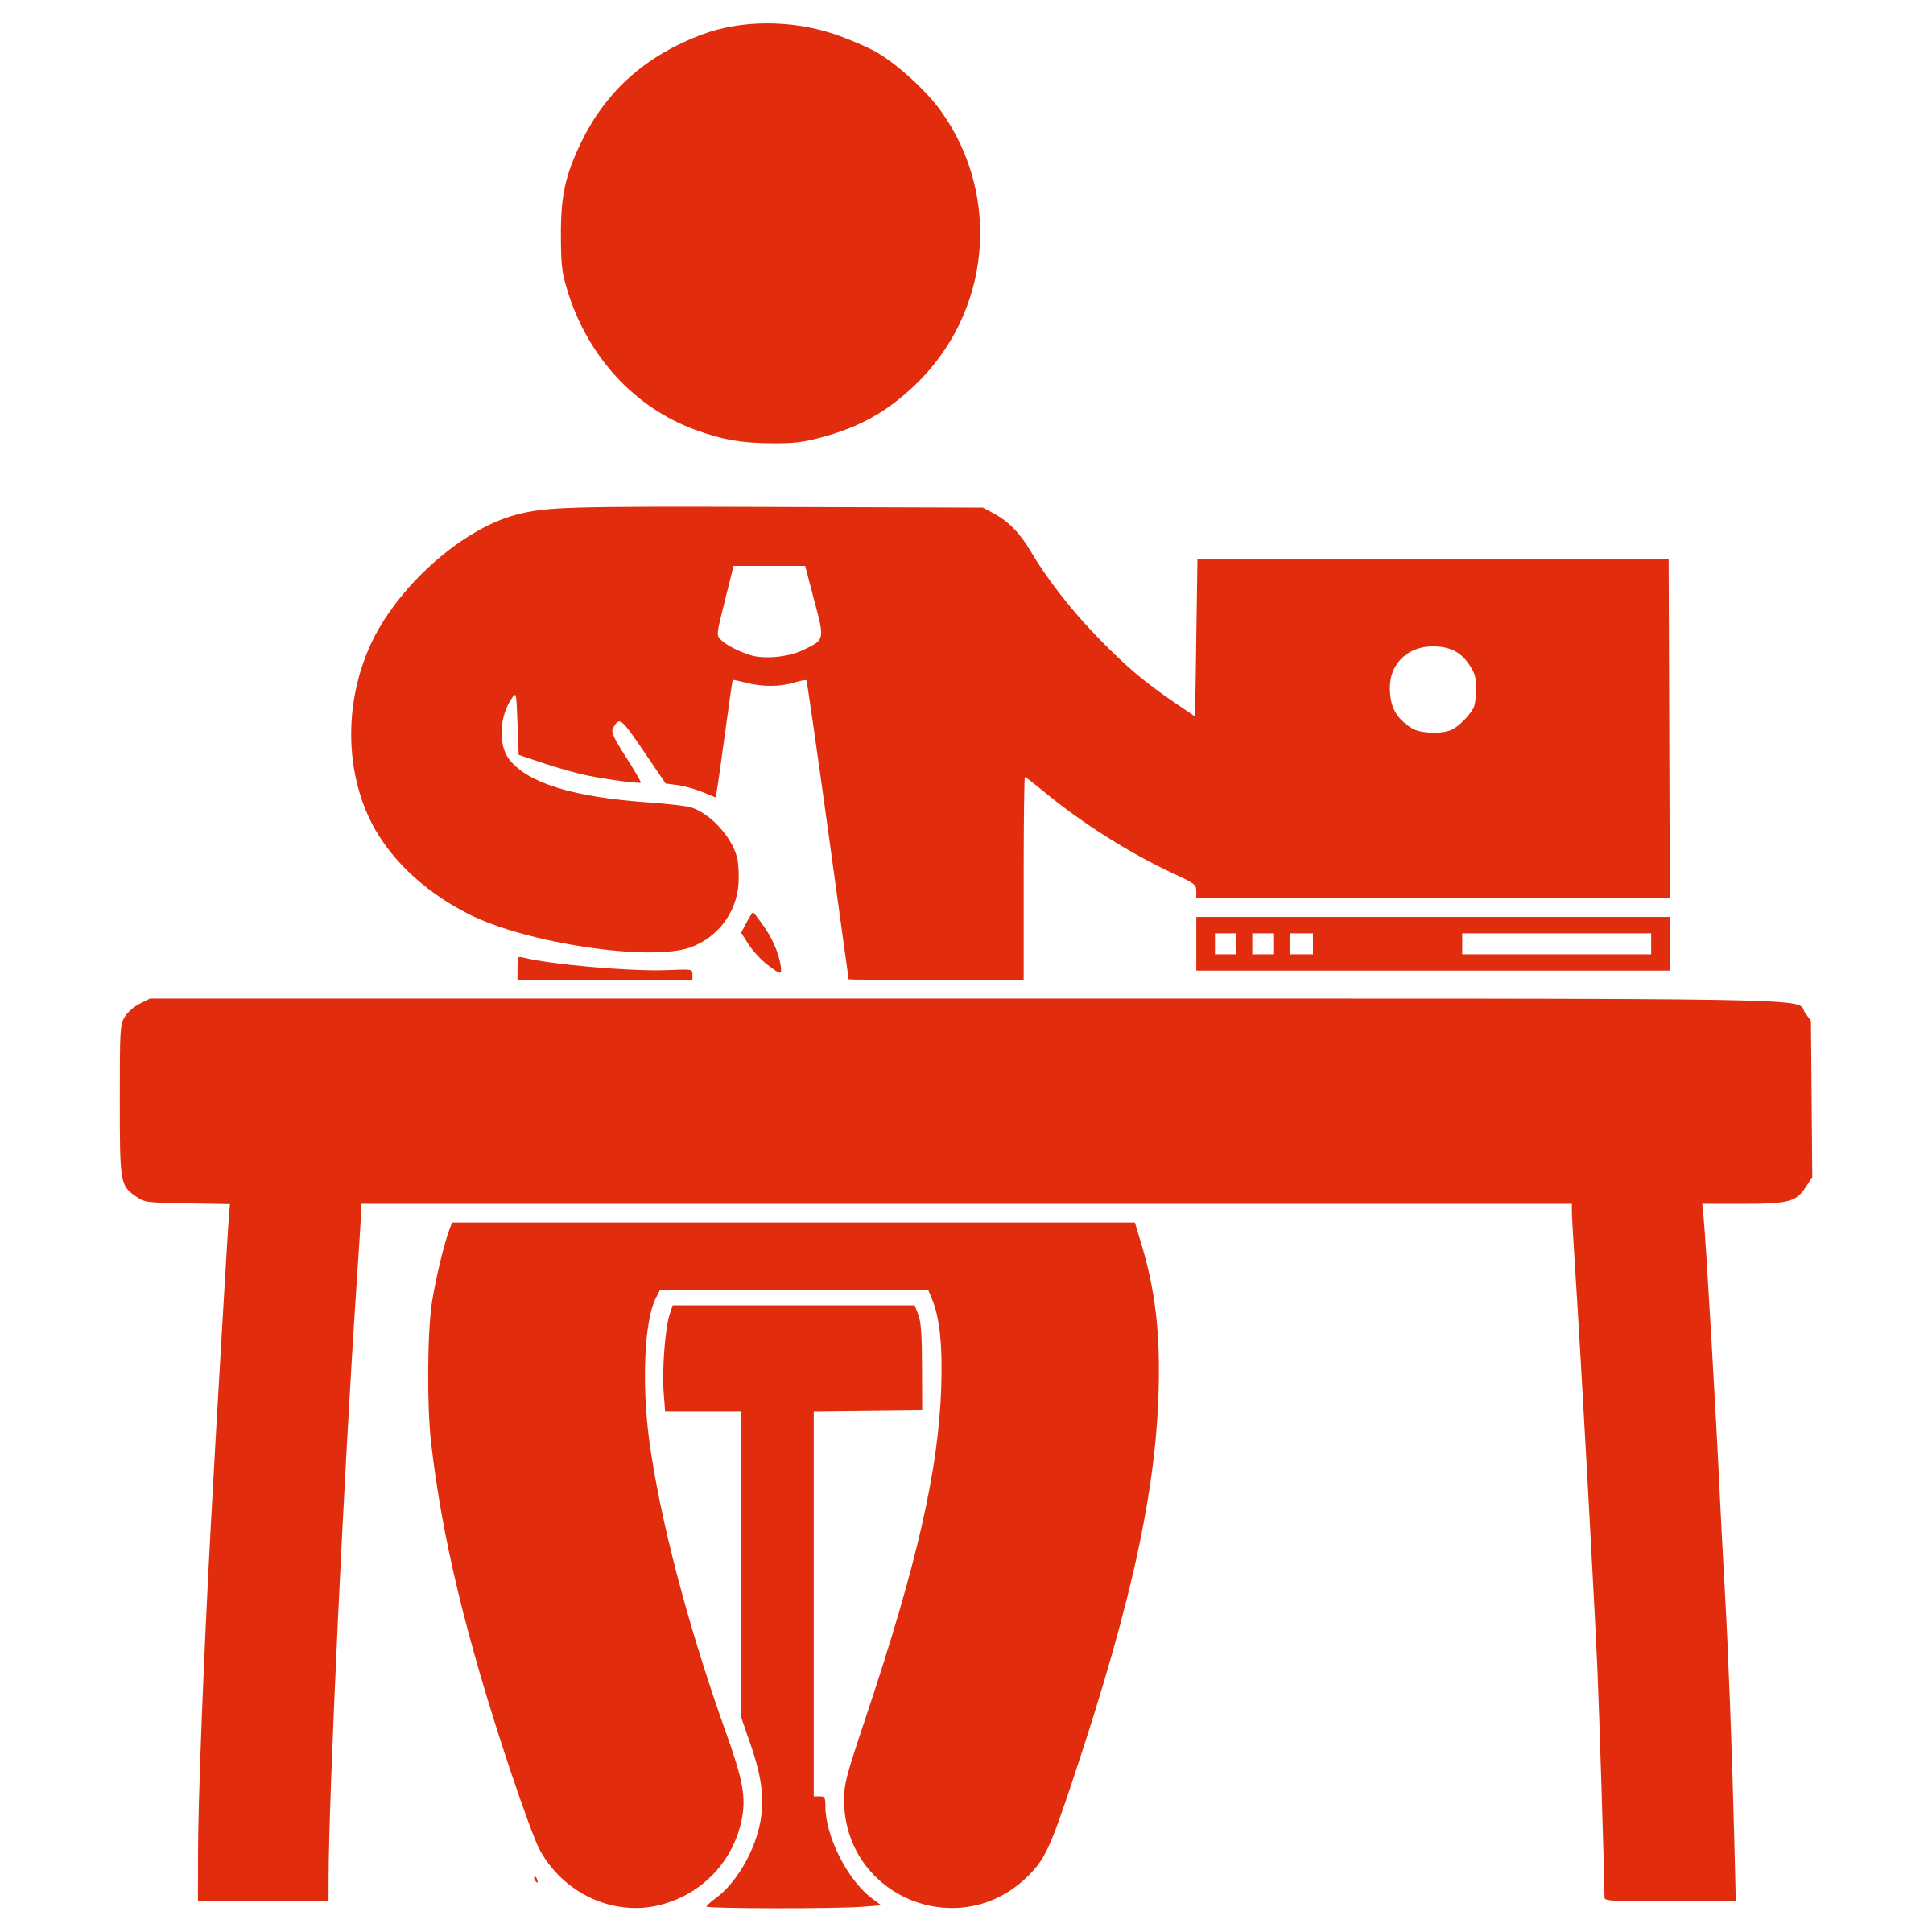 Working clipart future. Office pictures clip art